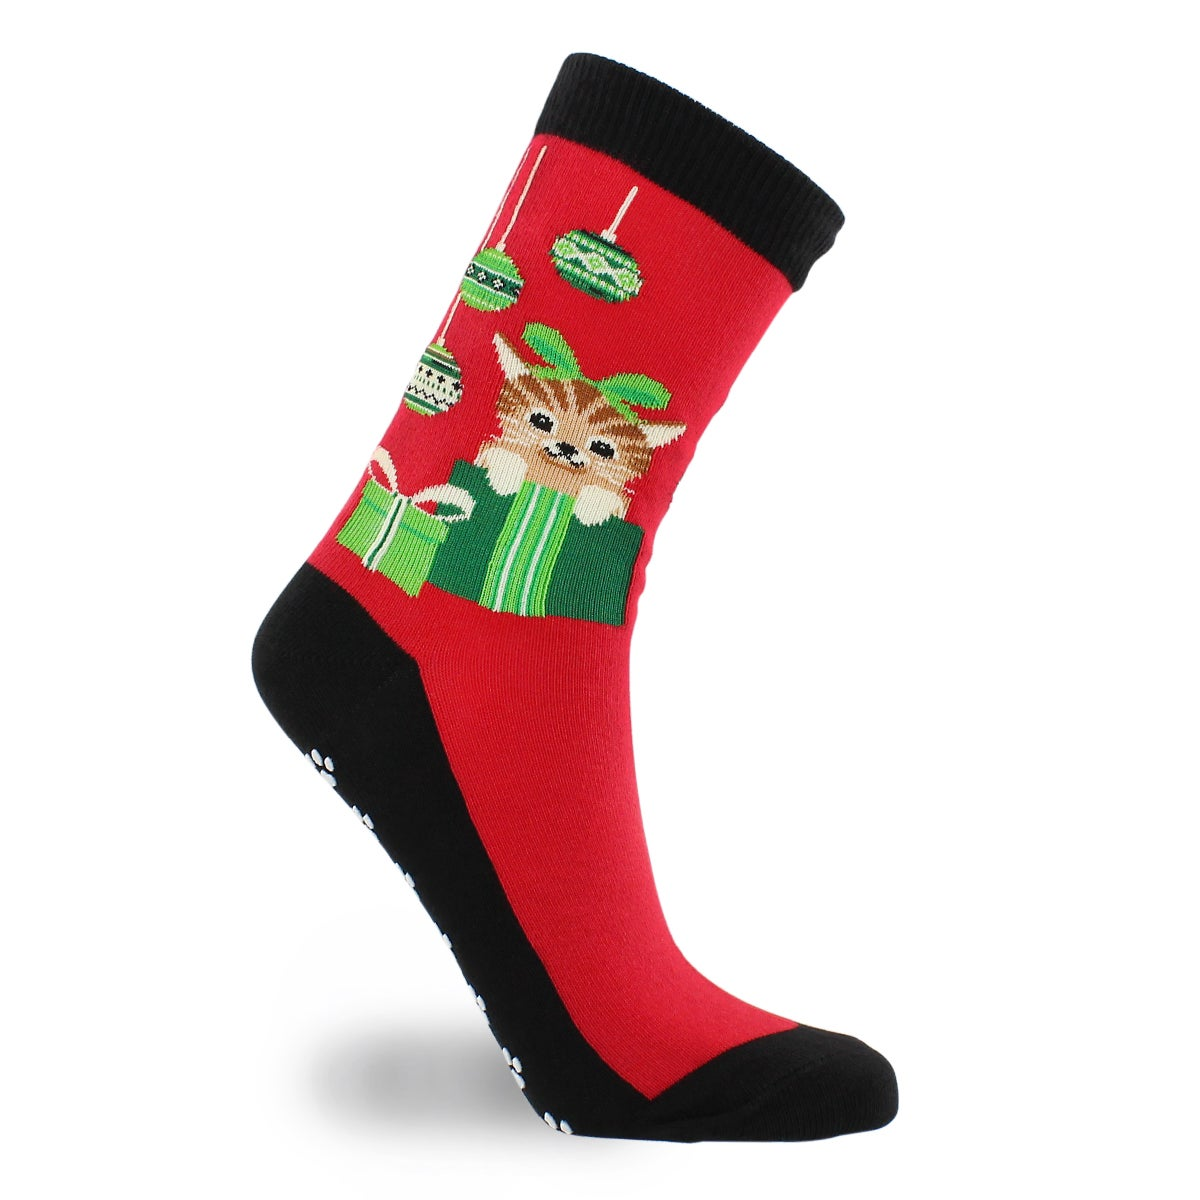 Lds Cat & Ornaments w Grippers red sock